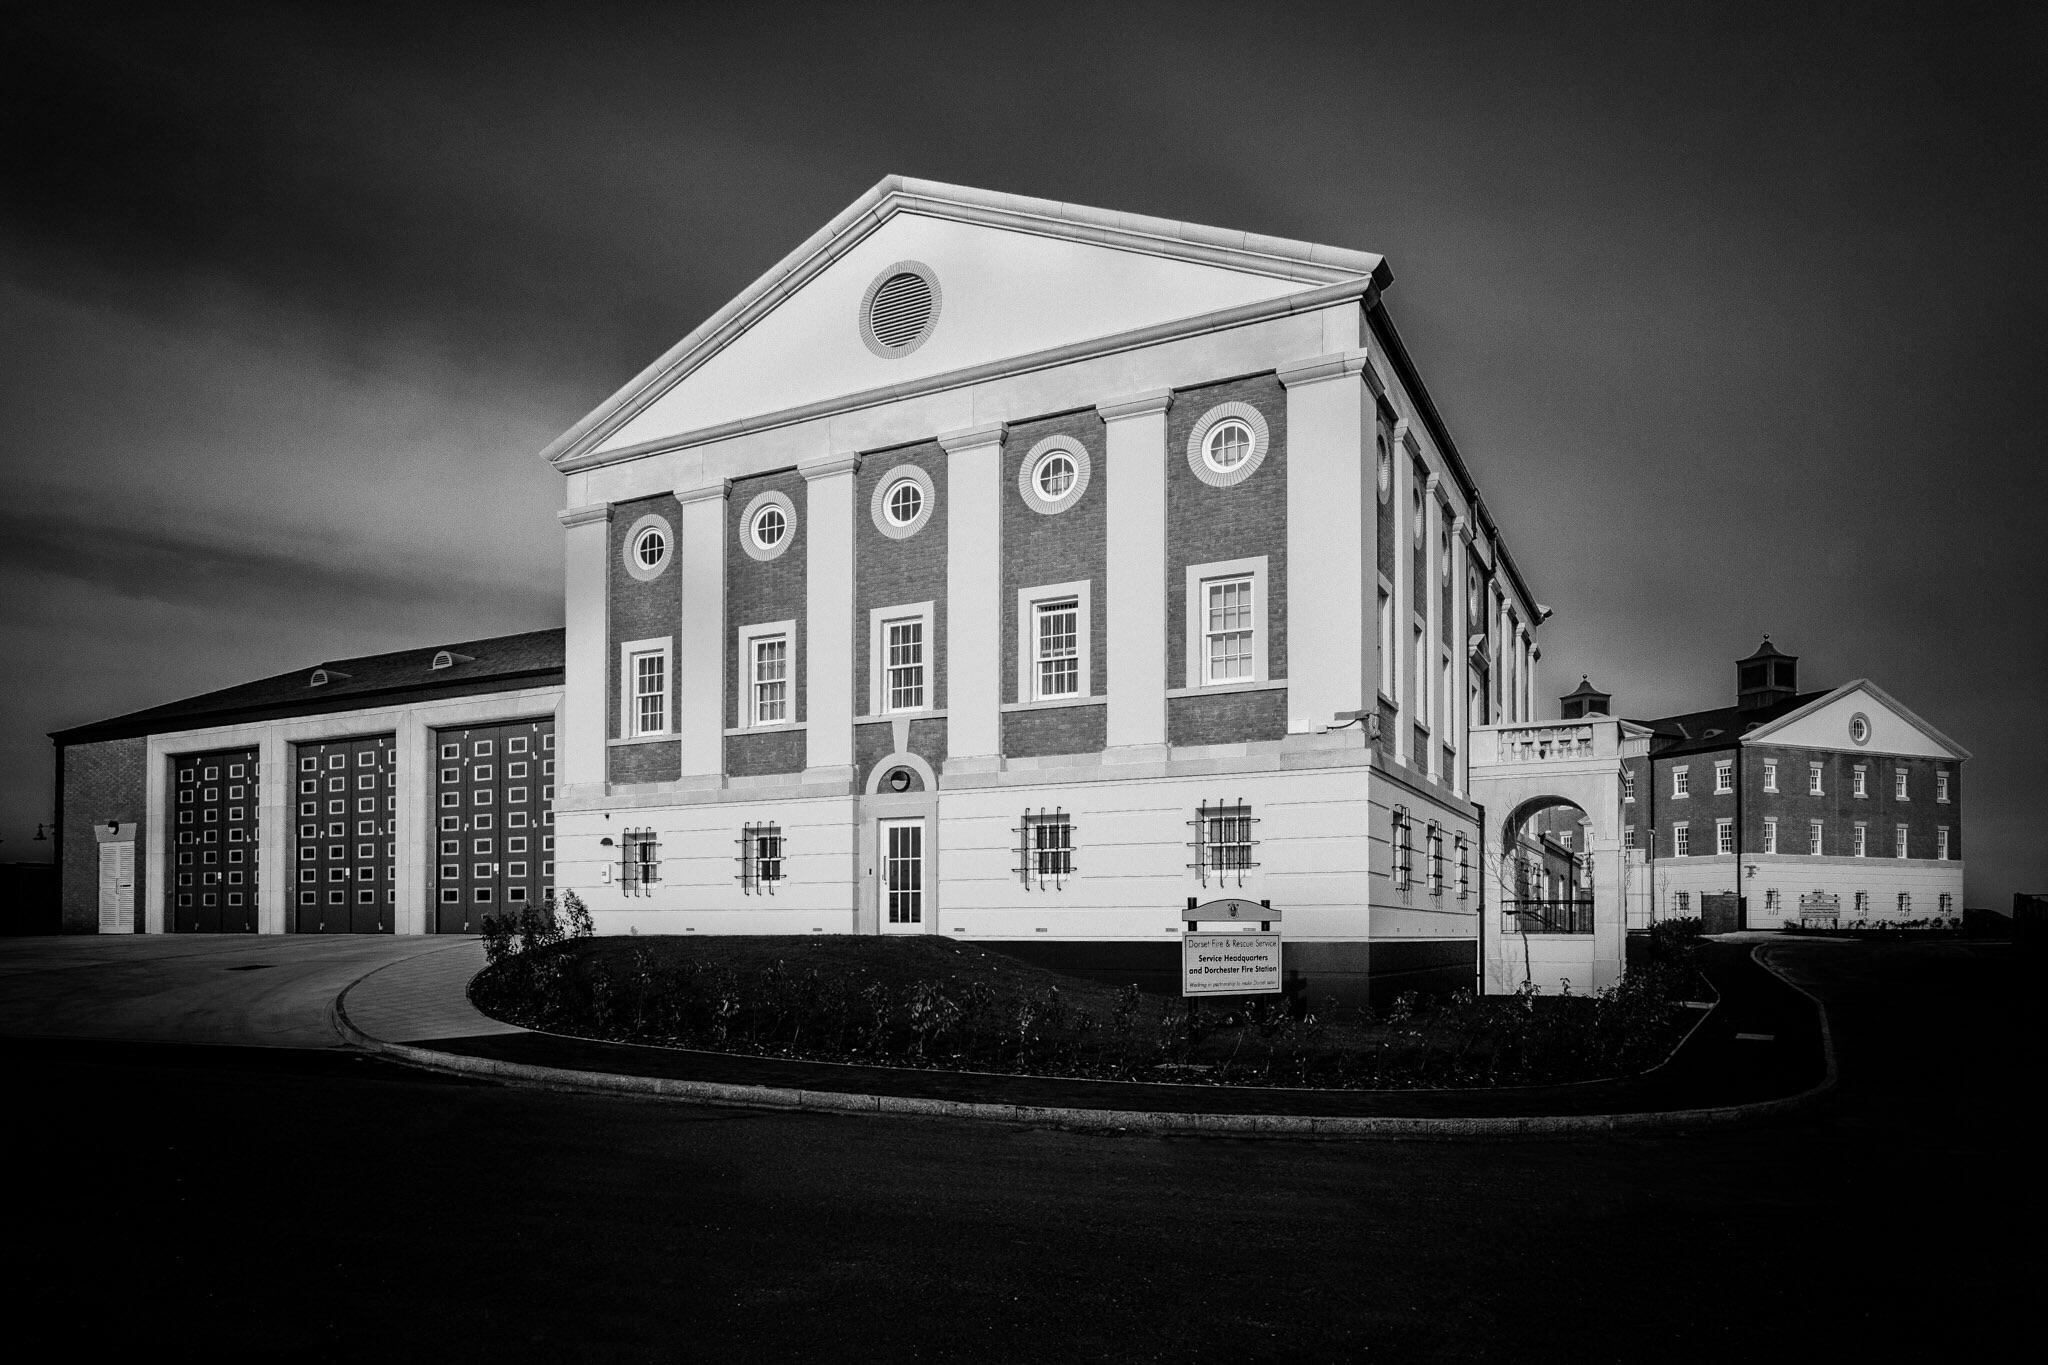 DFRS HQ and Dorchester Fire Station - architectural photography by Rick McEvoy